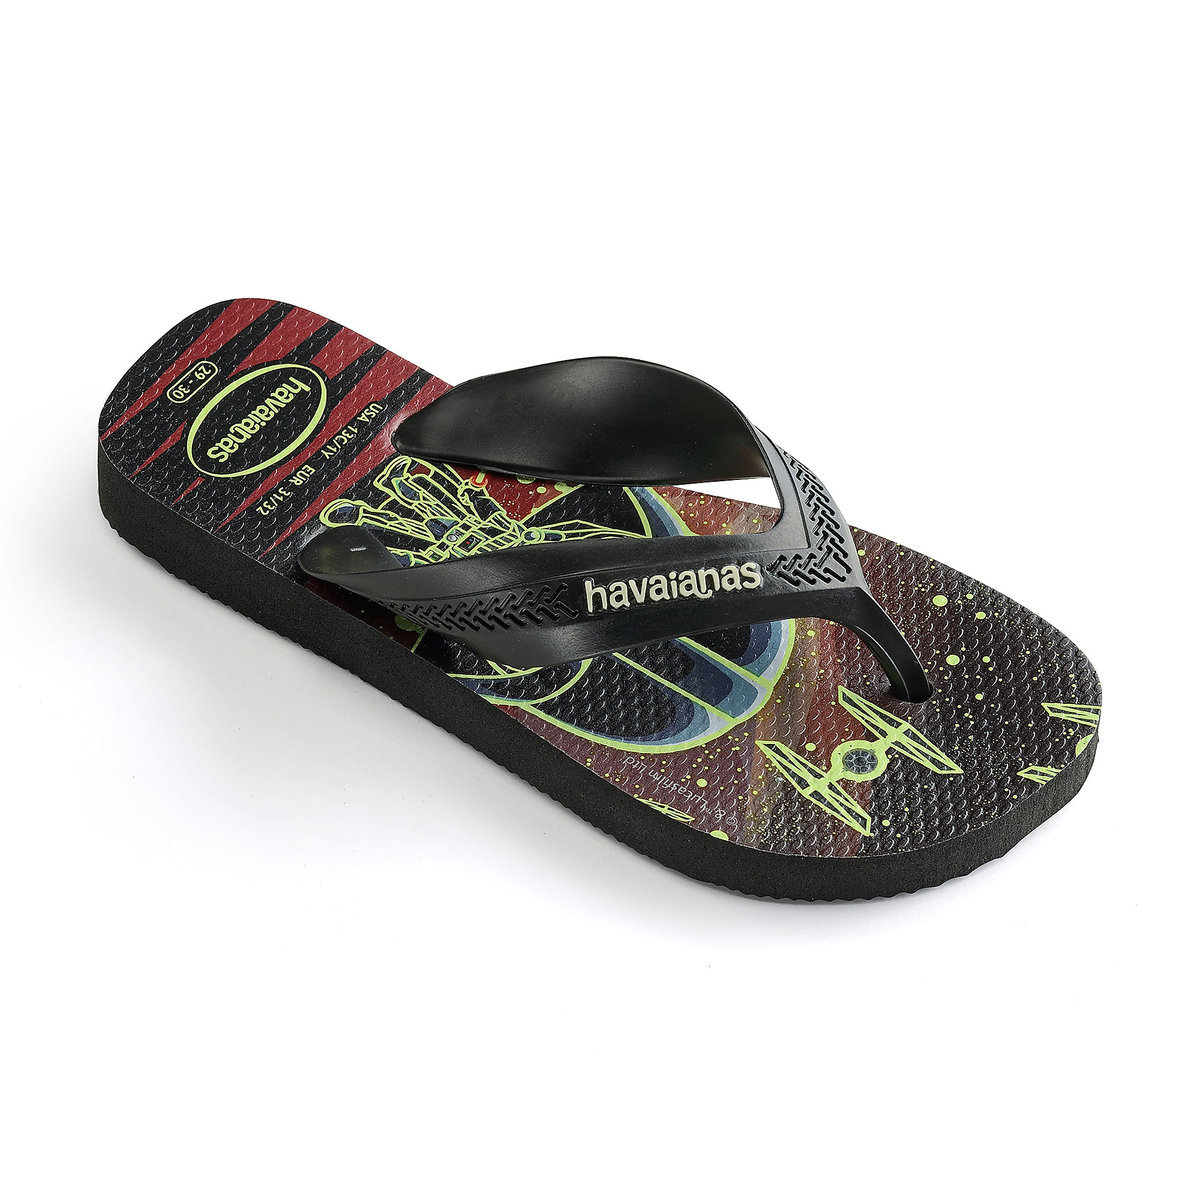 7efcdd6fd41e Product Image of Star Wars Glow-in-the-Dark Flip Flops for Kids